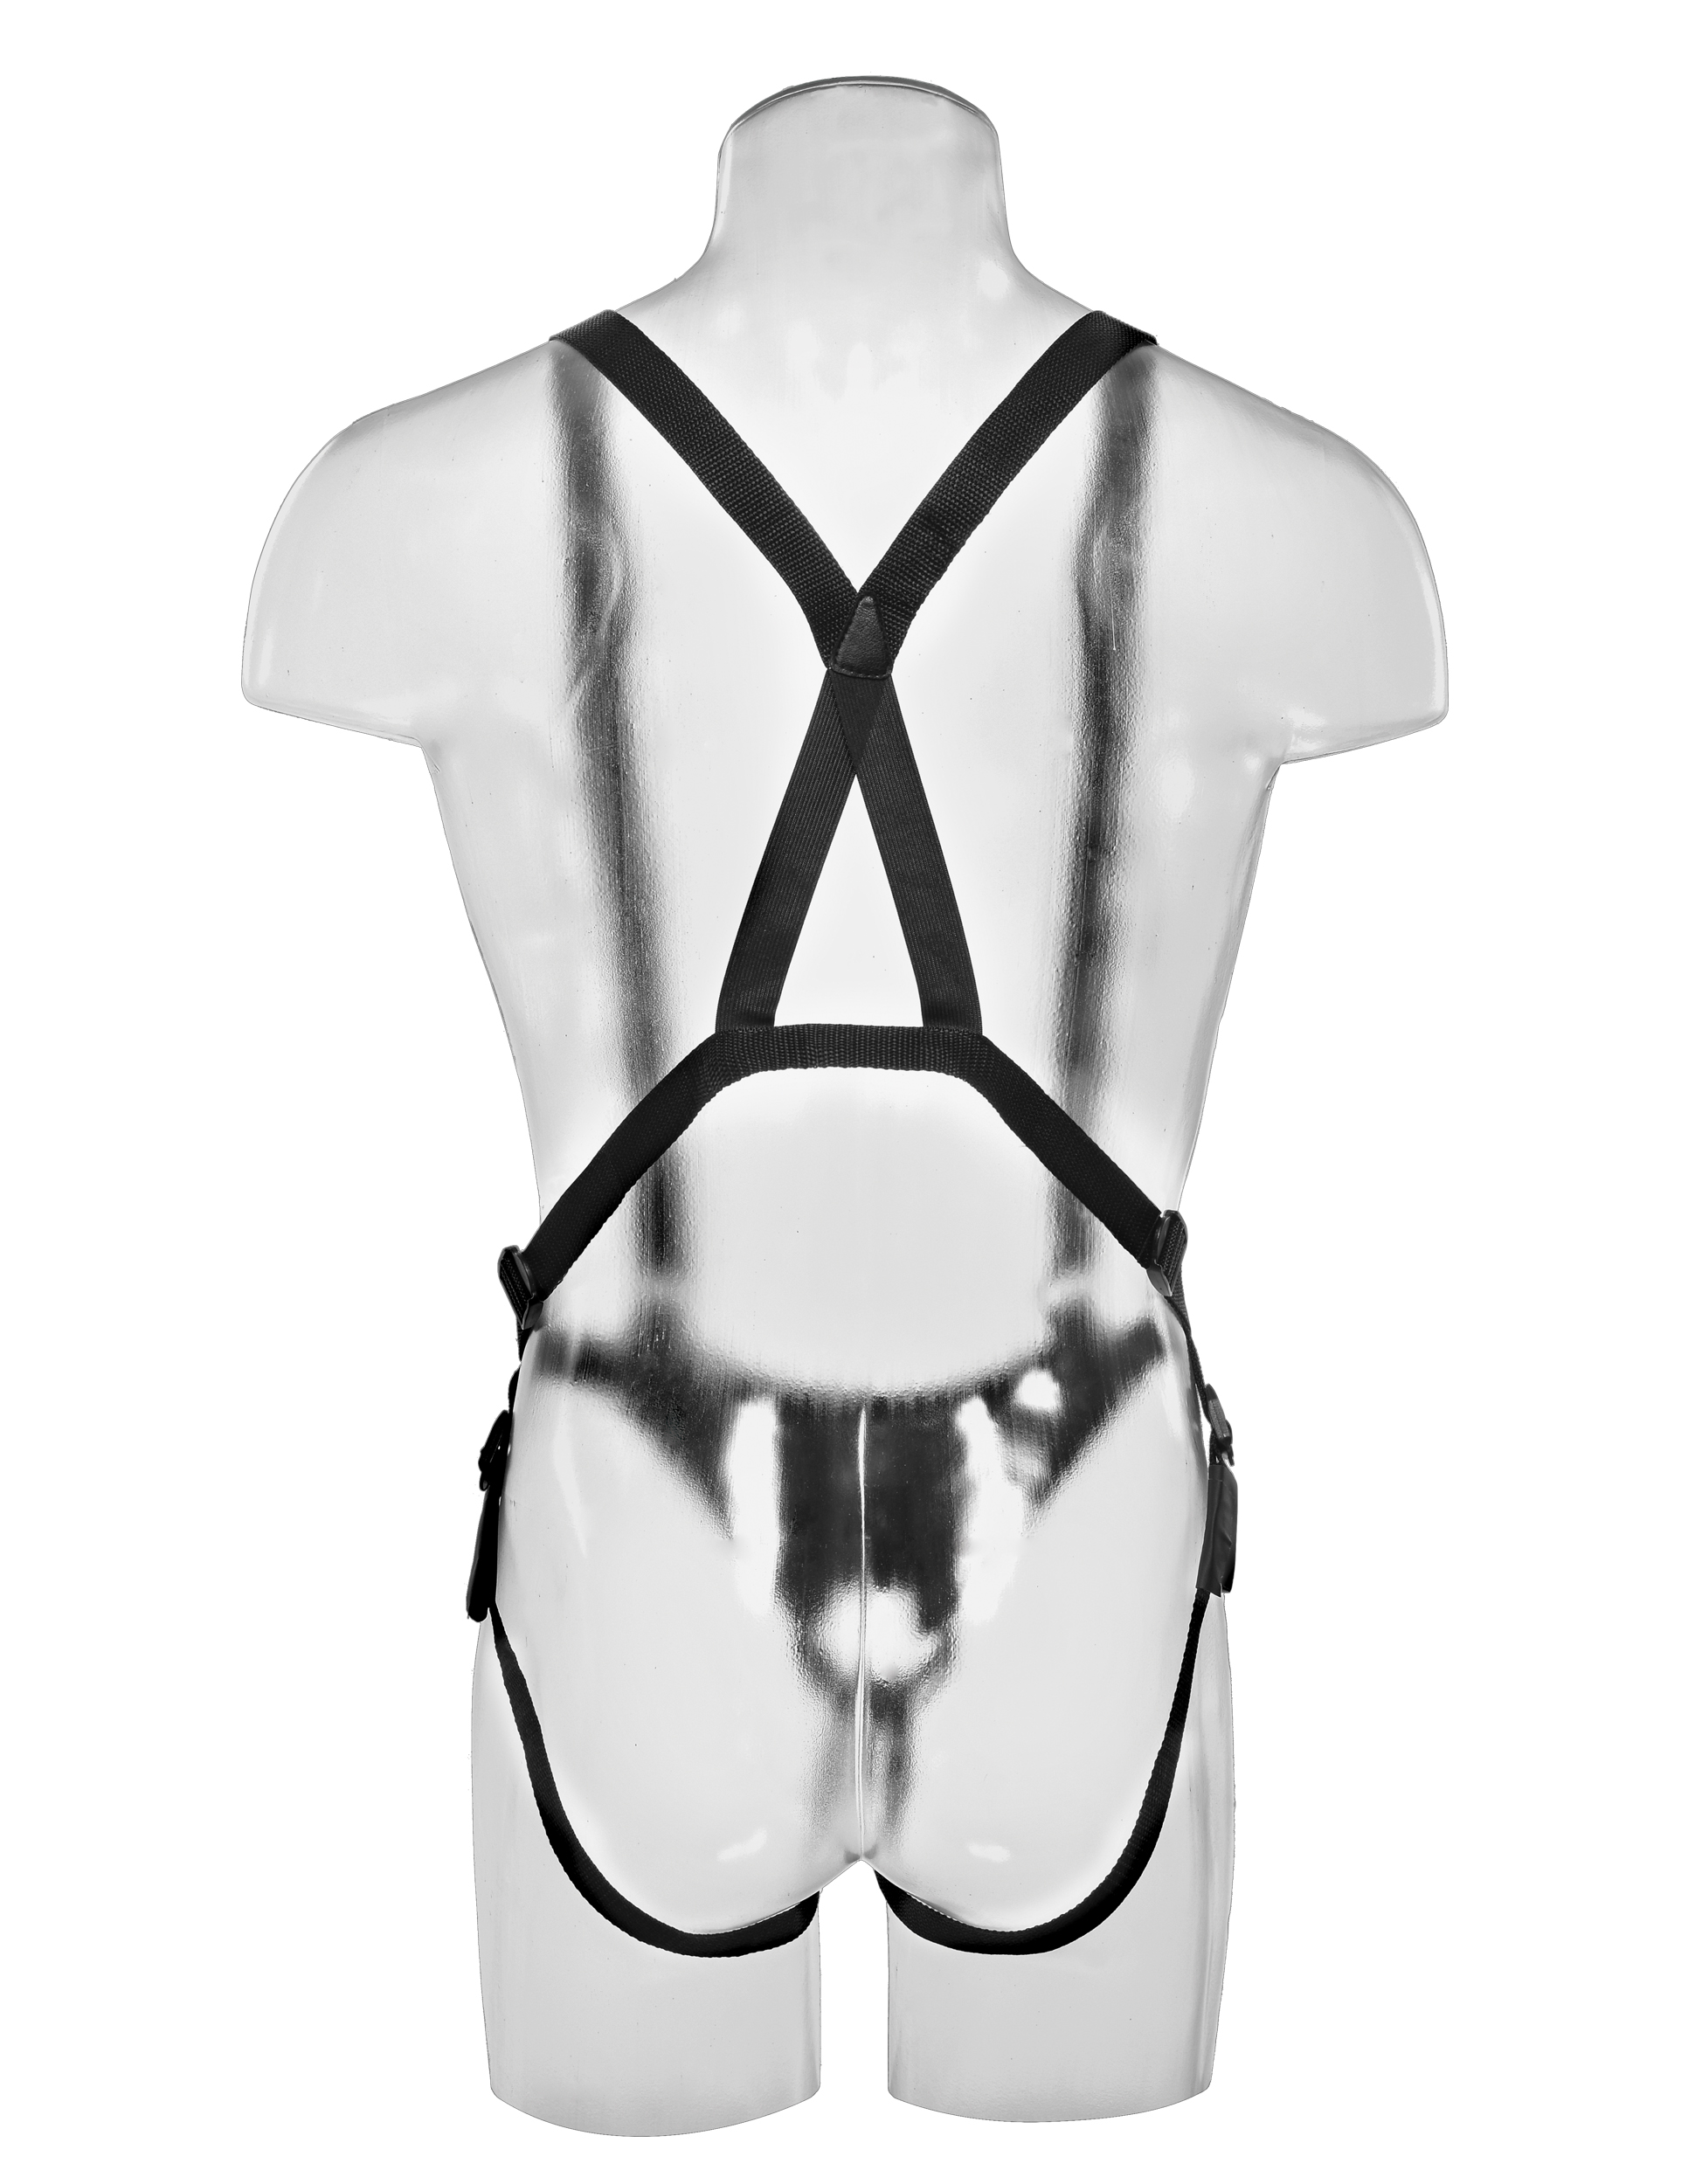 Hollow Strap-On Suspender System 27 cm - Tan